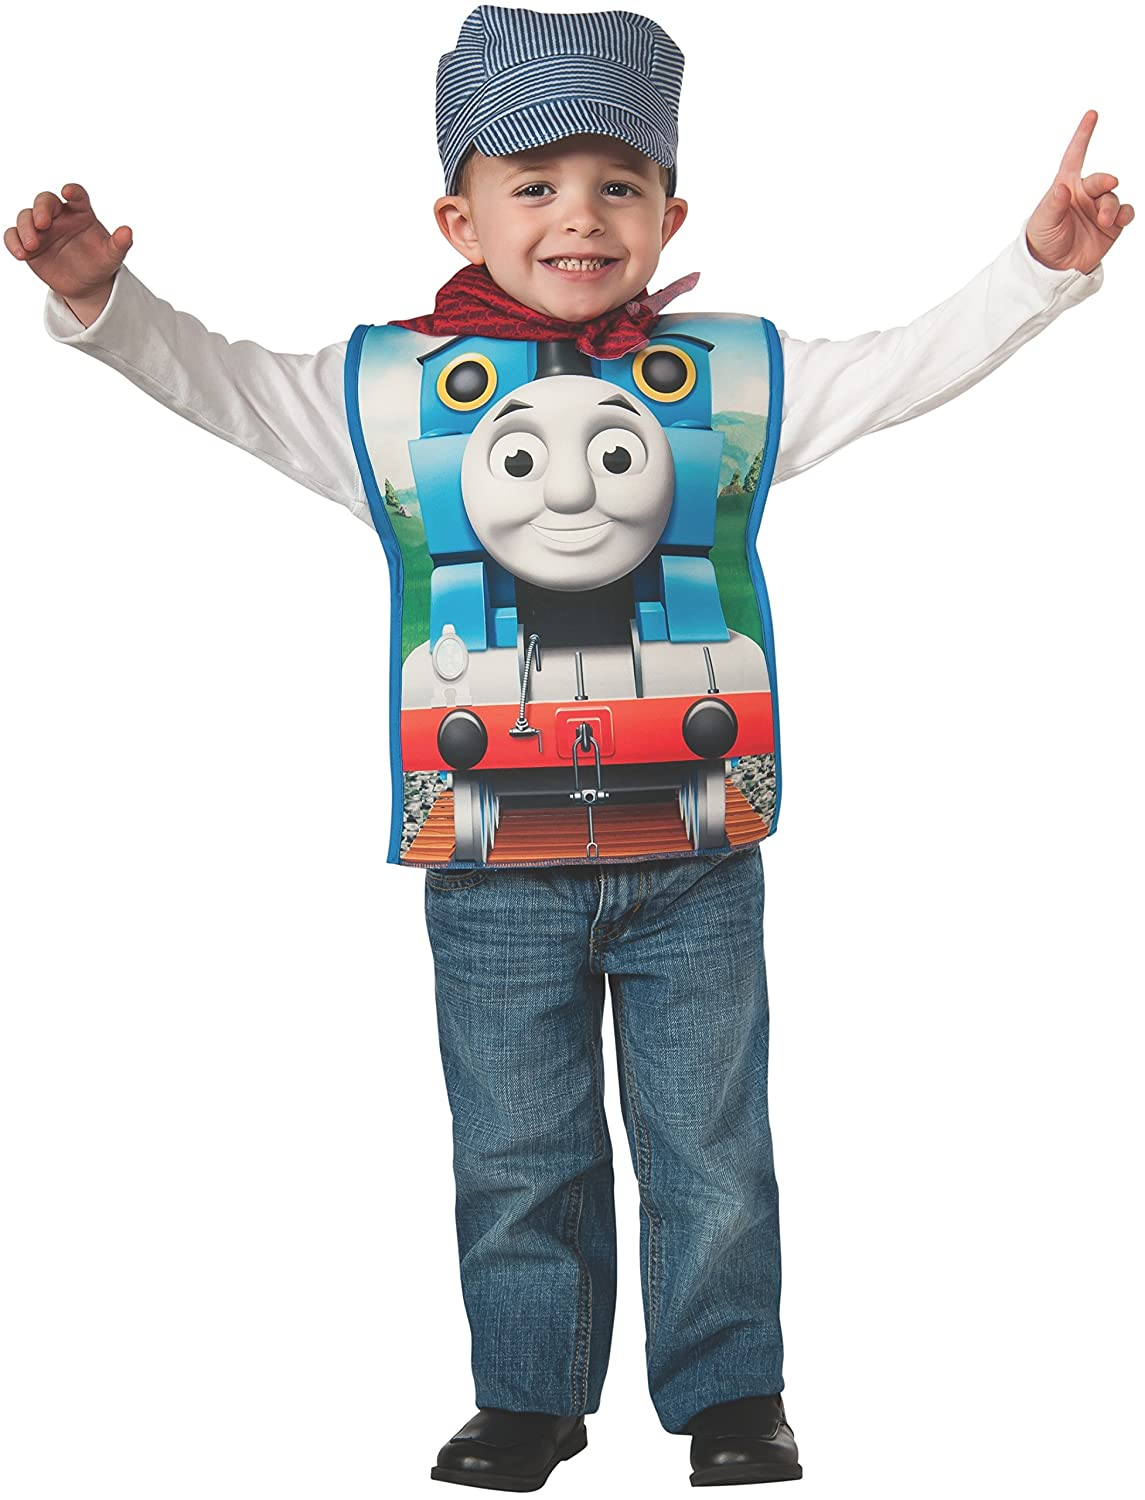 Rubies Thomas and Friends, The Thomas The Friends, Tank Engine Costume, Child Small by Rubie's 1fda15